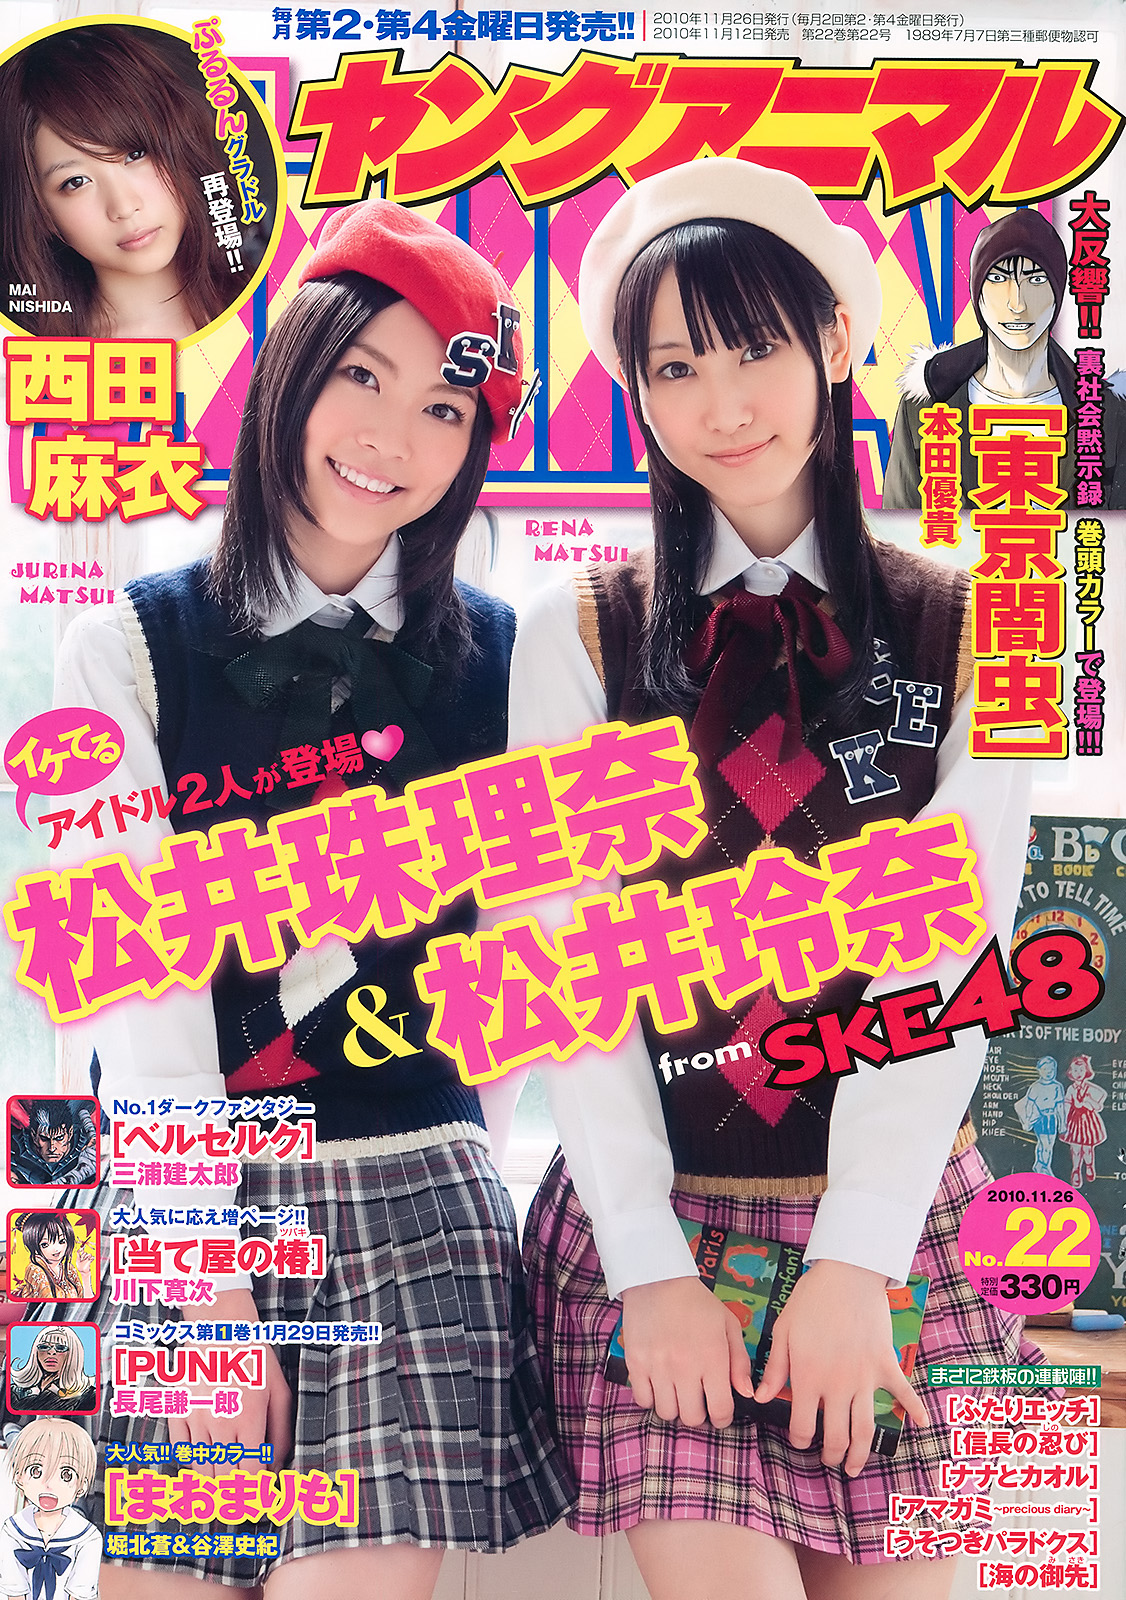 [Young Animal] 2010 No.22  Jurina Matsui 松井珠理奈 & Rena Matsui 松井玲奈 [17P11MB] young 08110